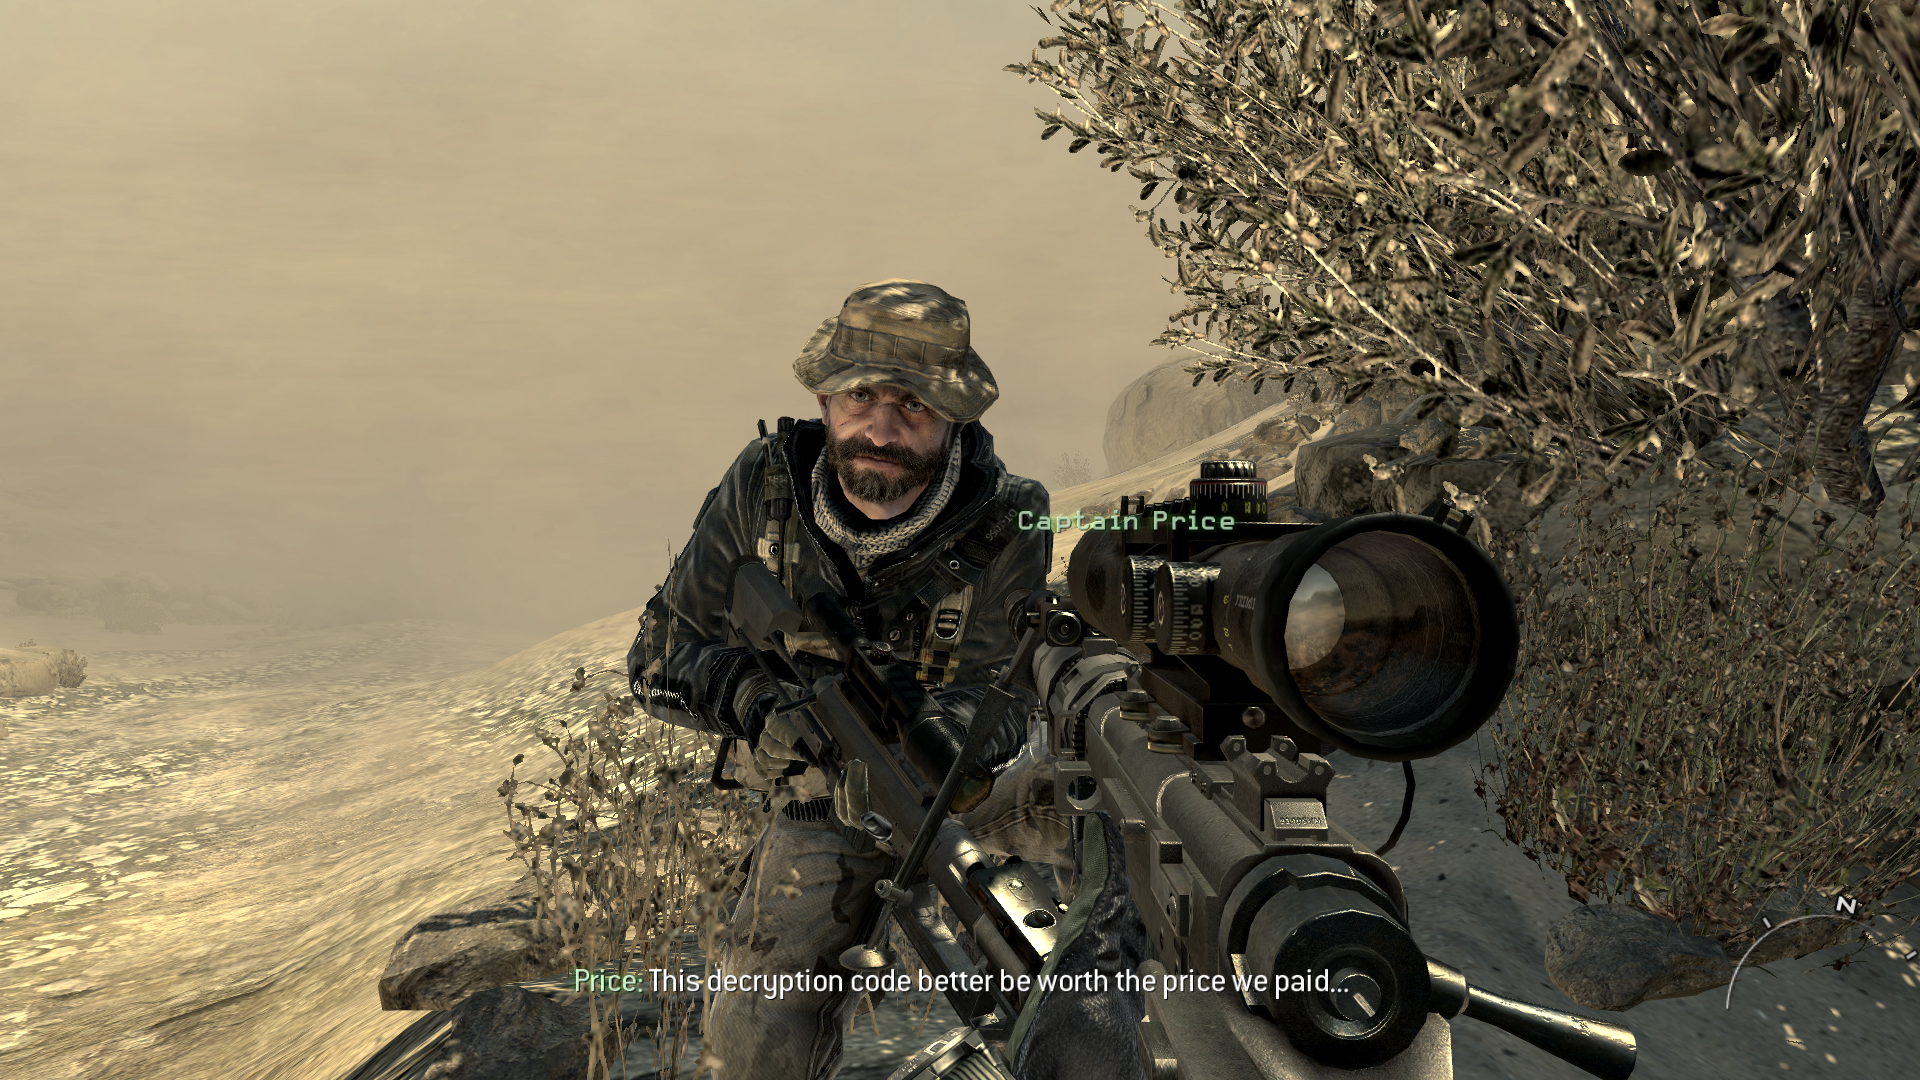 Captain Price screenshots images and pictures   Giant Bomb 1920x1080